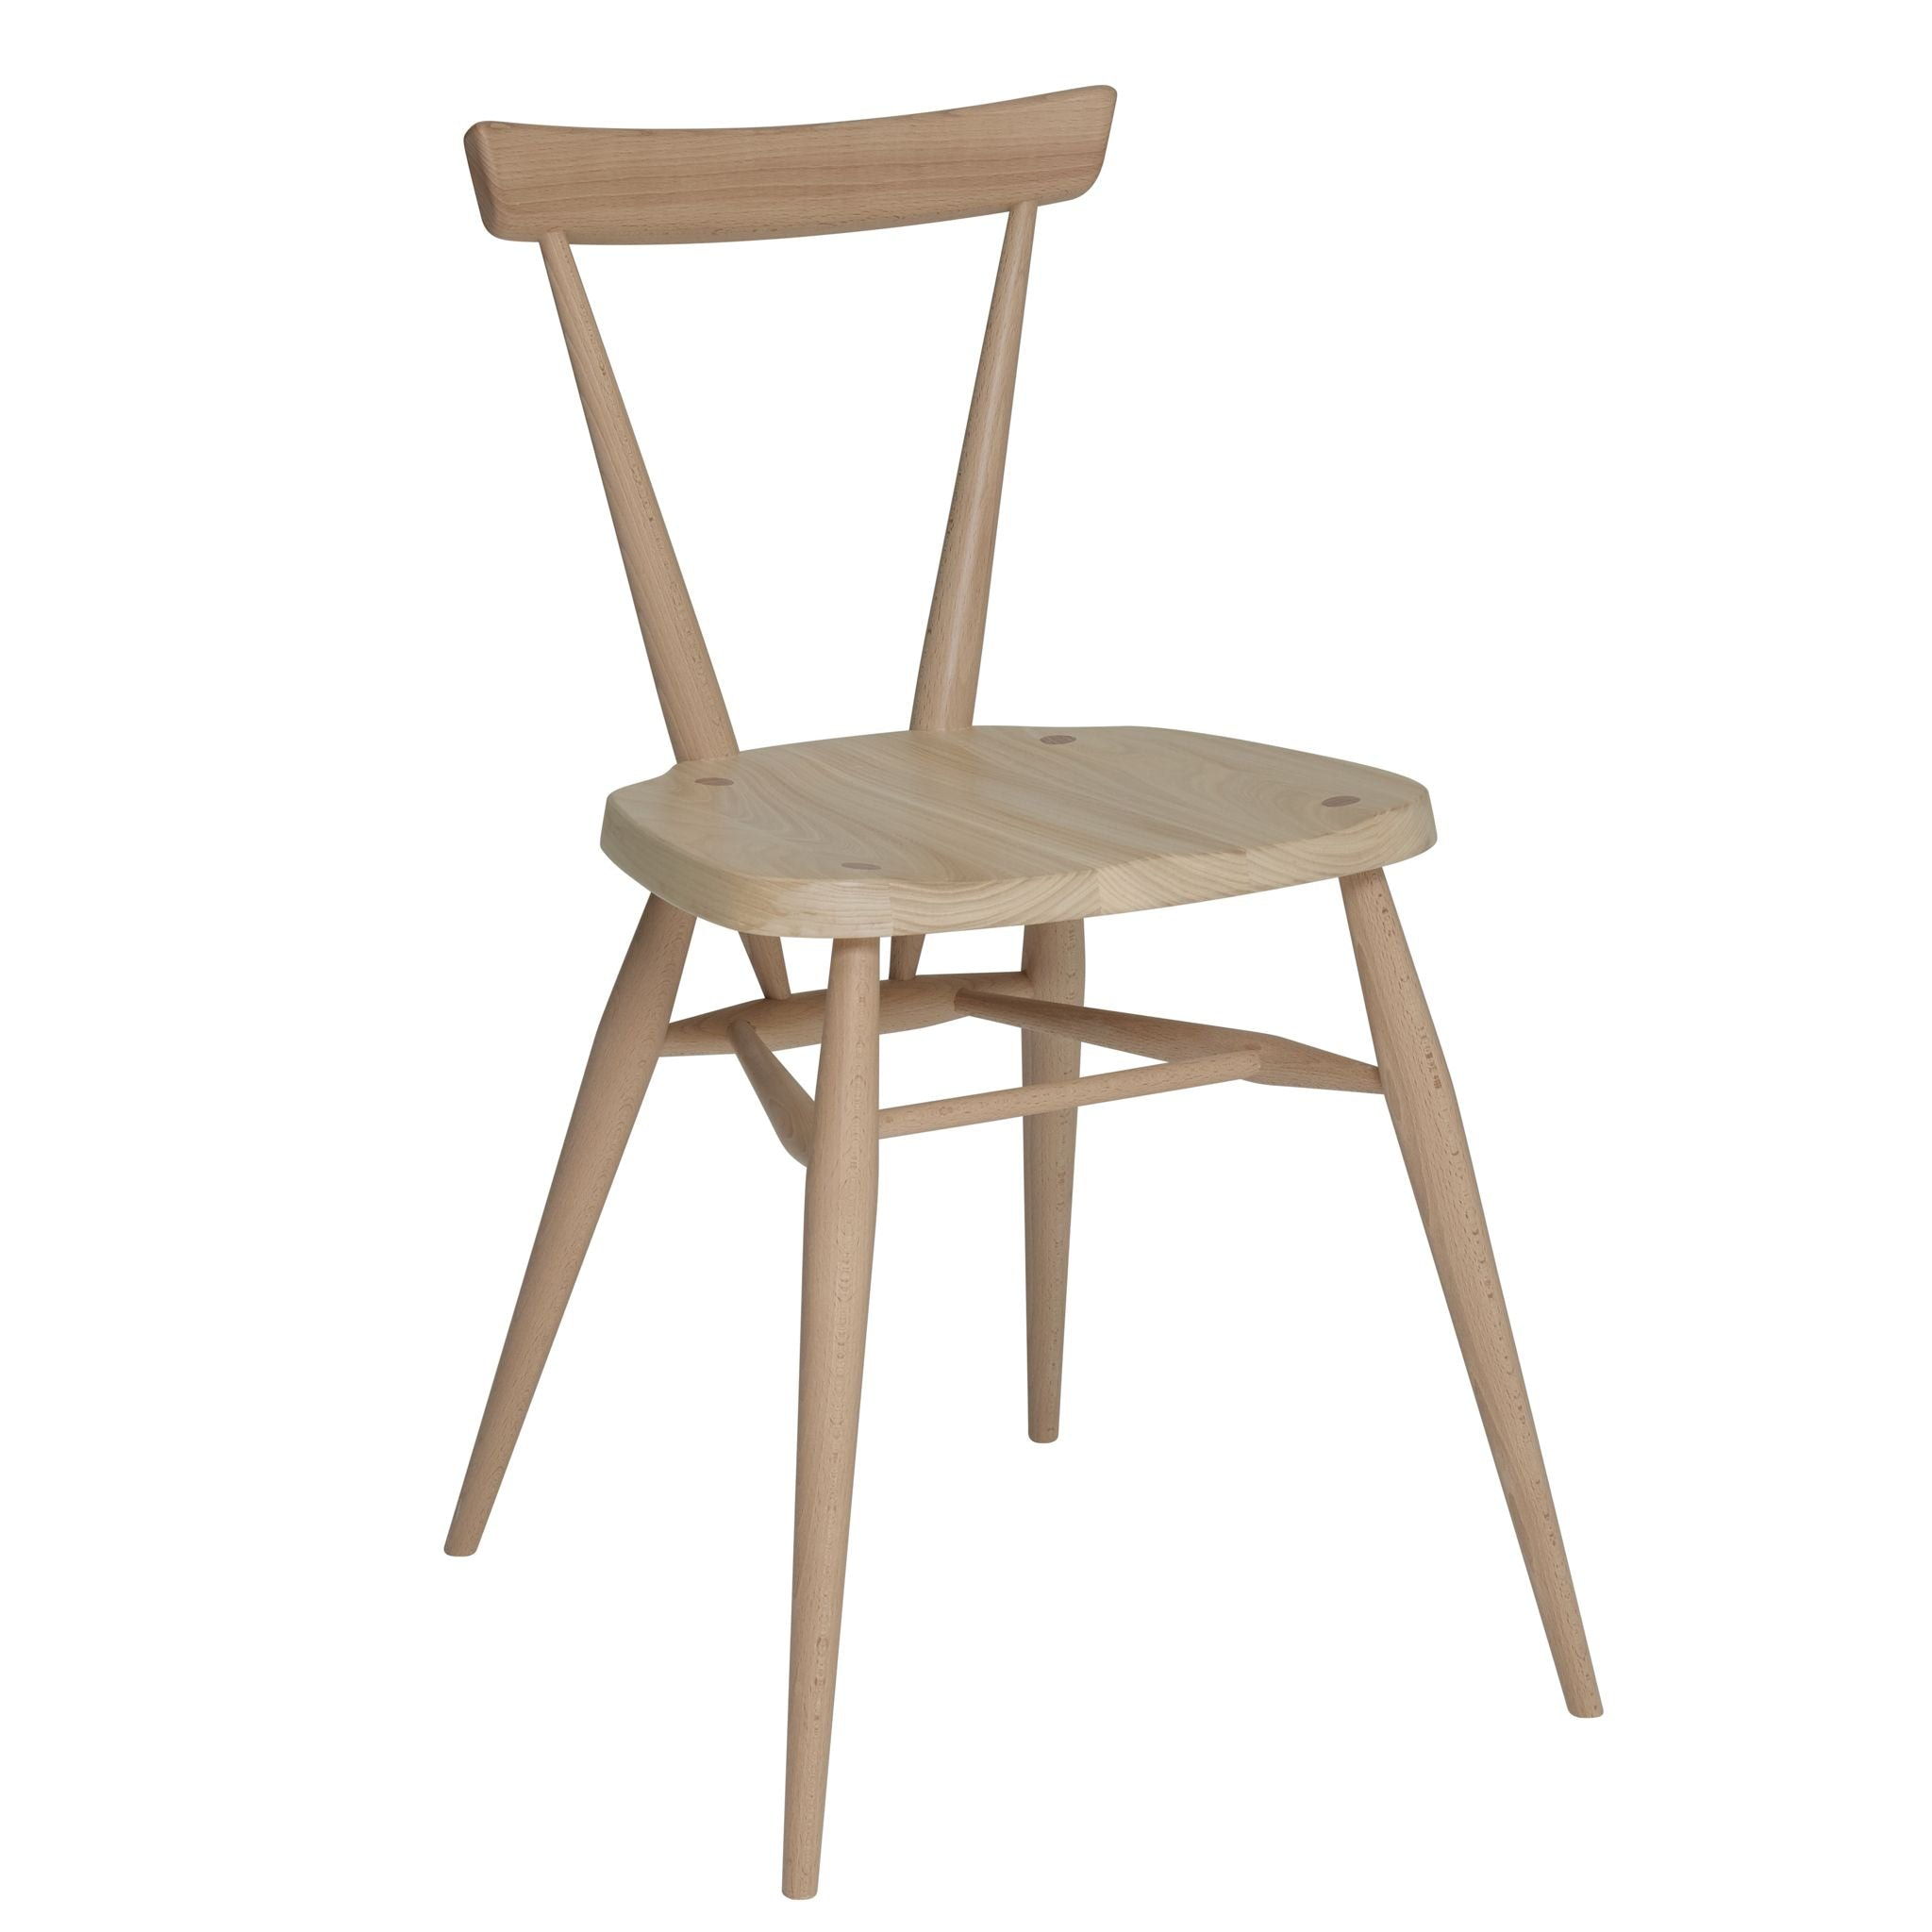 Originals Stacking Chair by Ercol